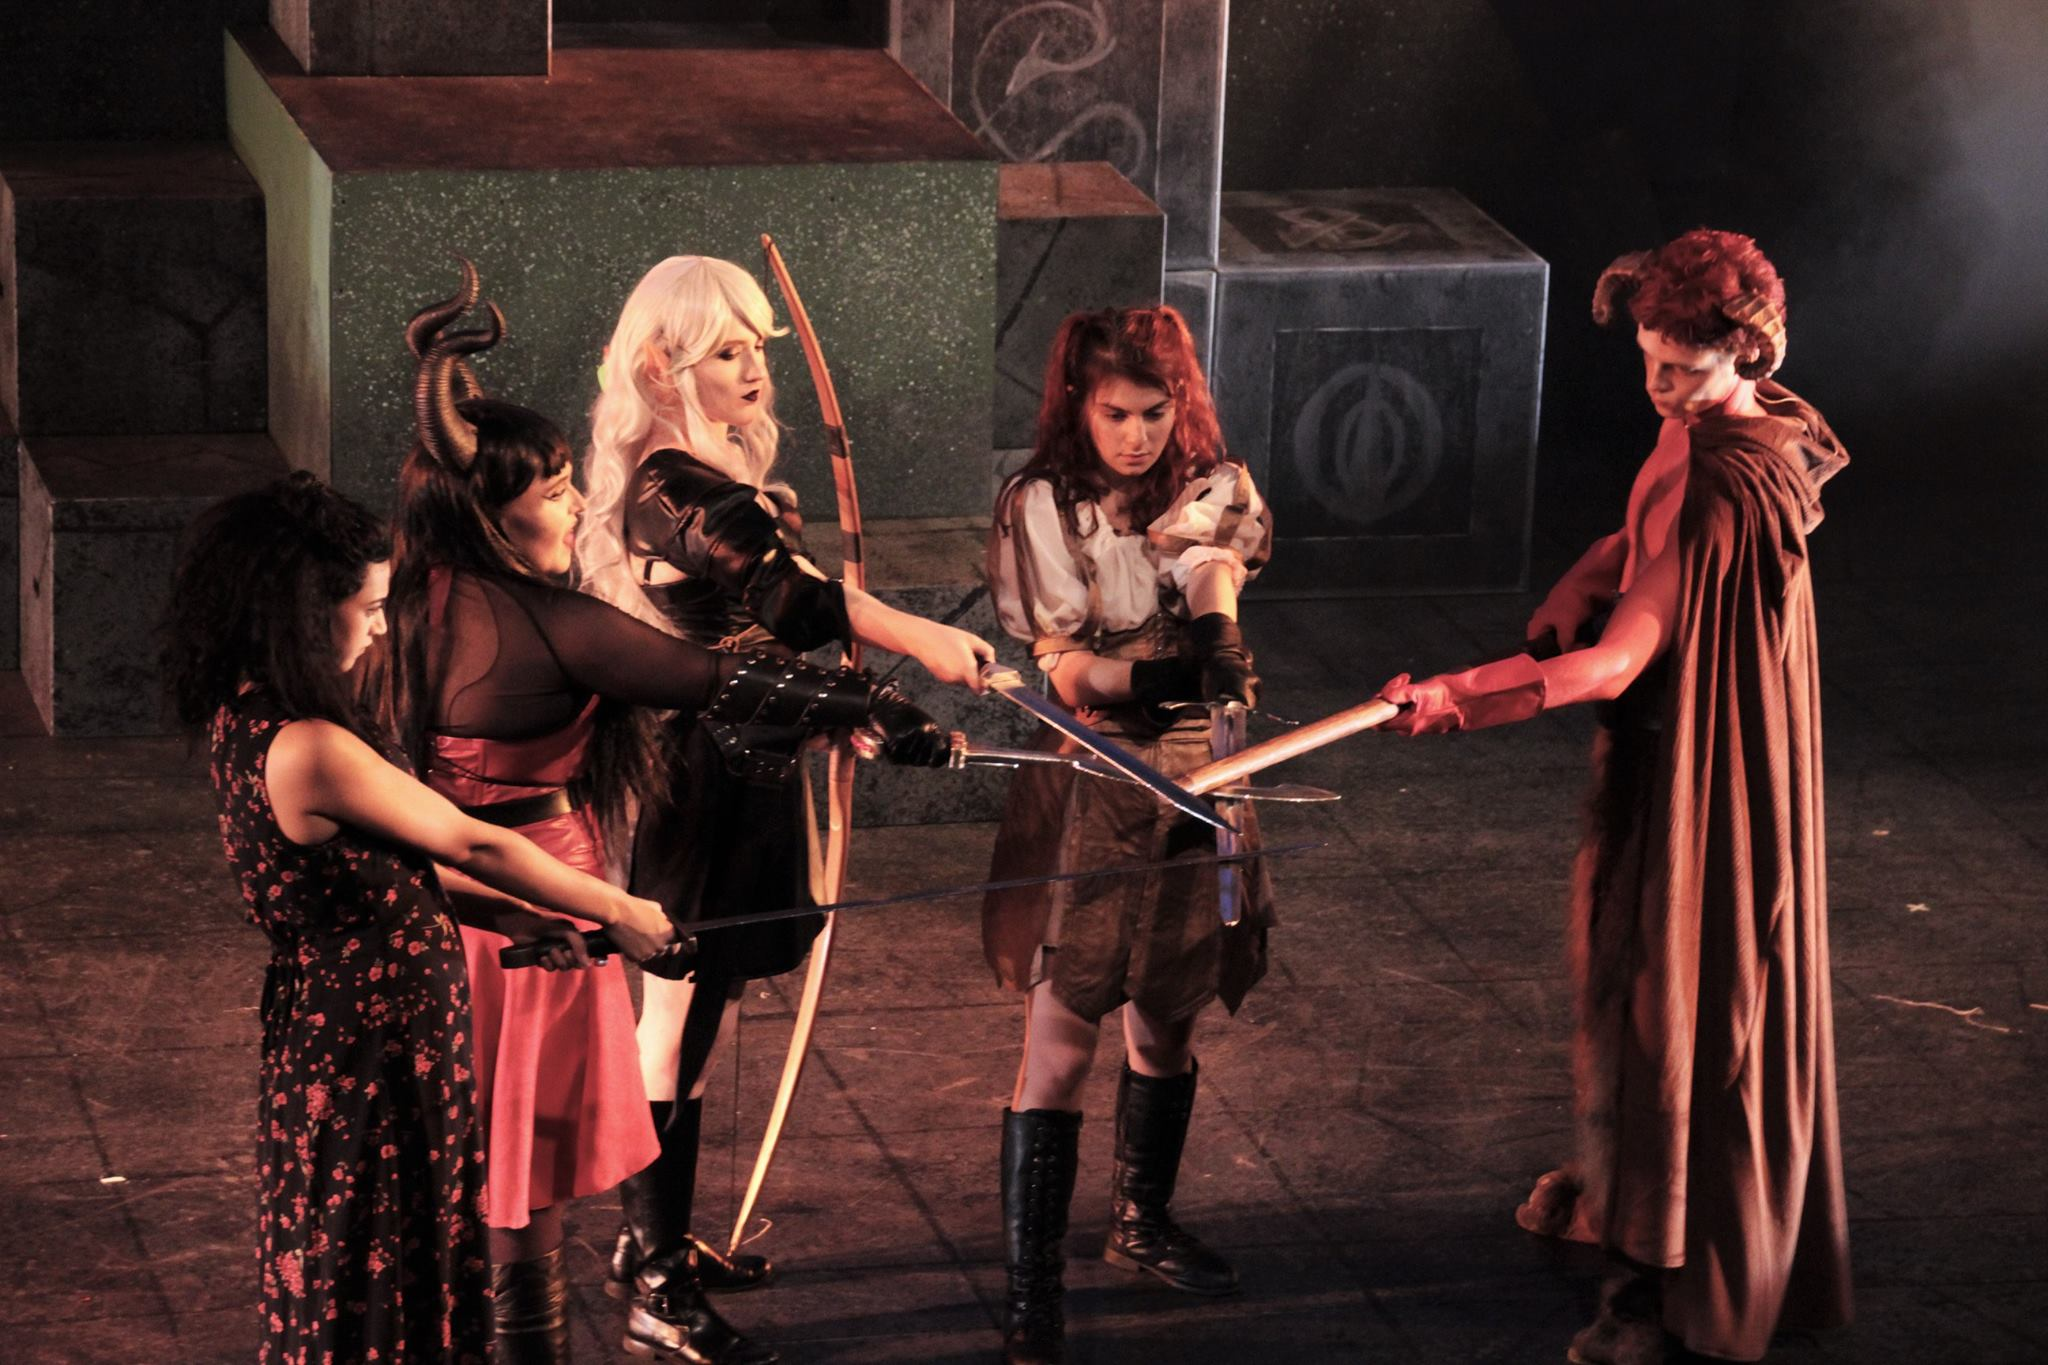 Victoria as Kaliope Darkwalker in Rider University's production of  She Kills Monsters.